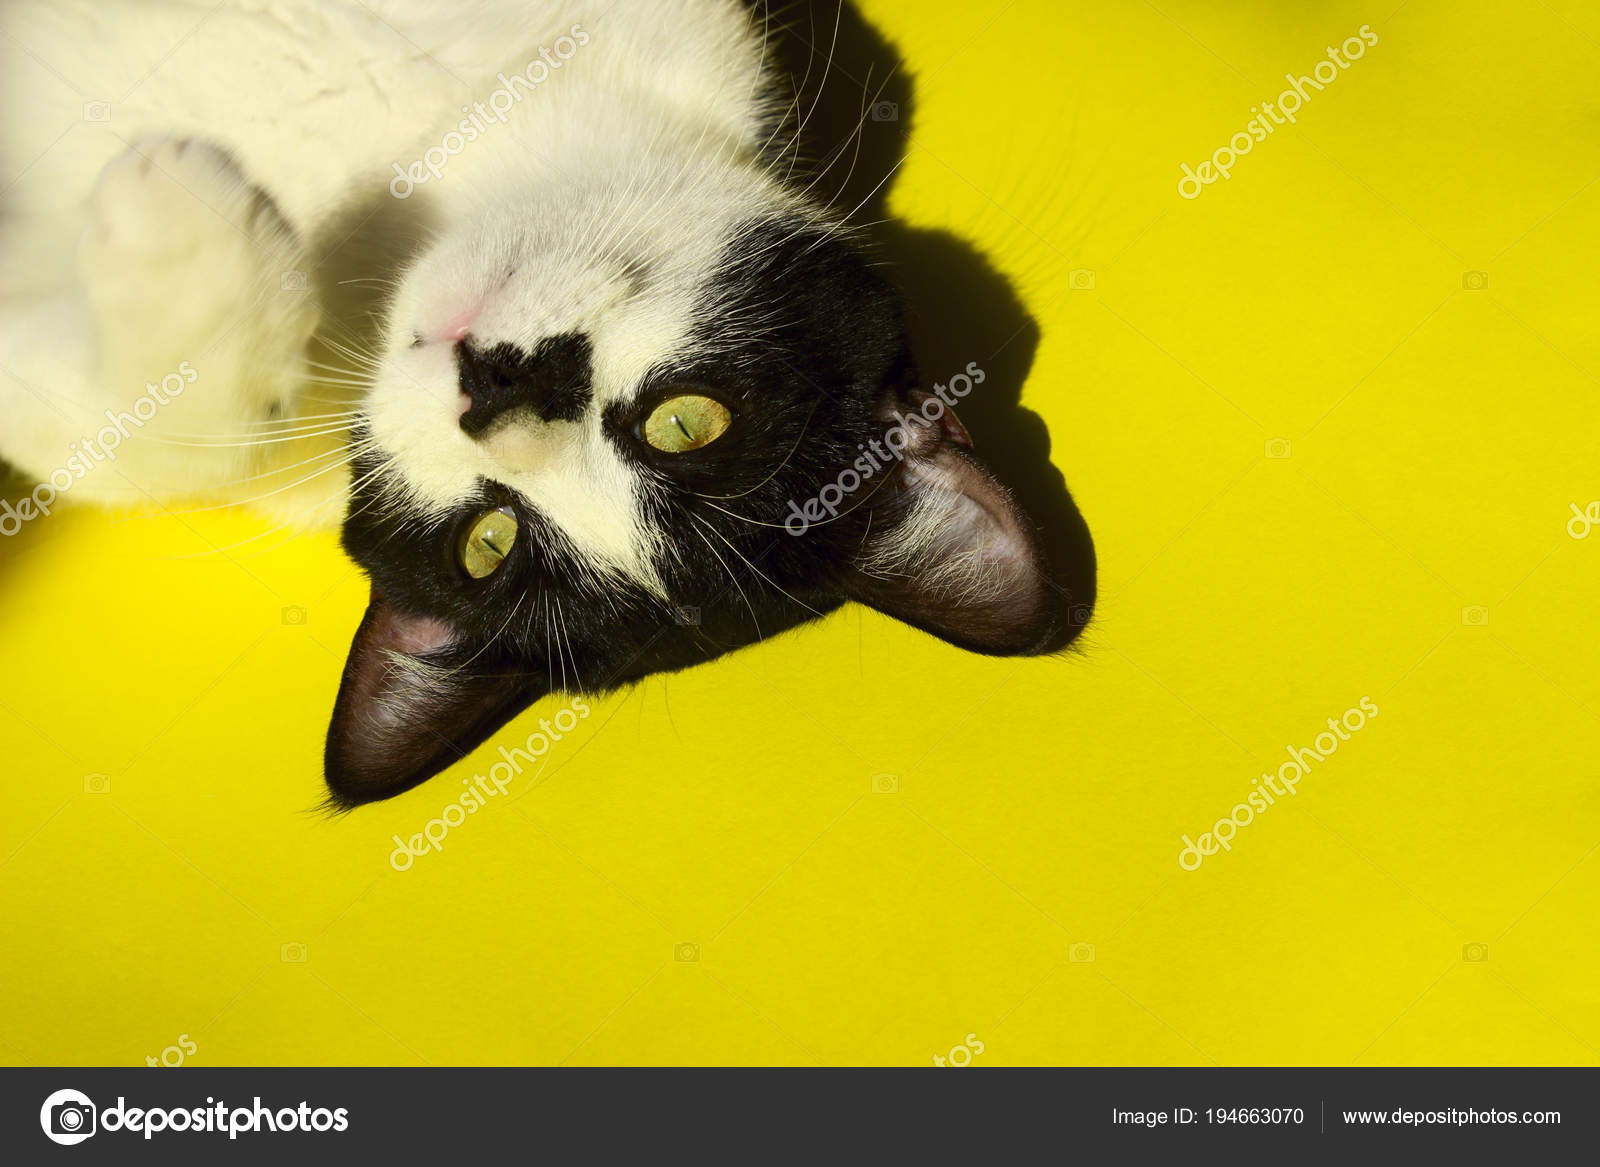 Black Cat Yellow Background Cropped Shot Tuxedo Cat Yellow Background Stock Photo C Stepunina Gmail Com 194663070